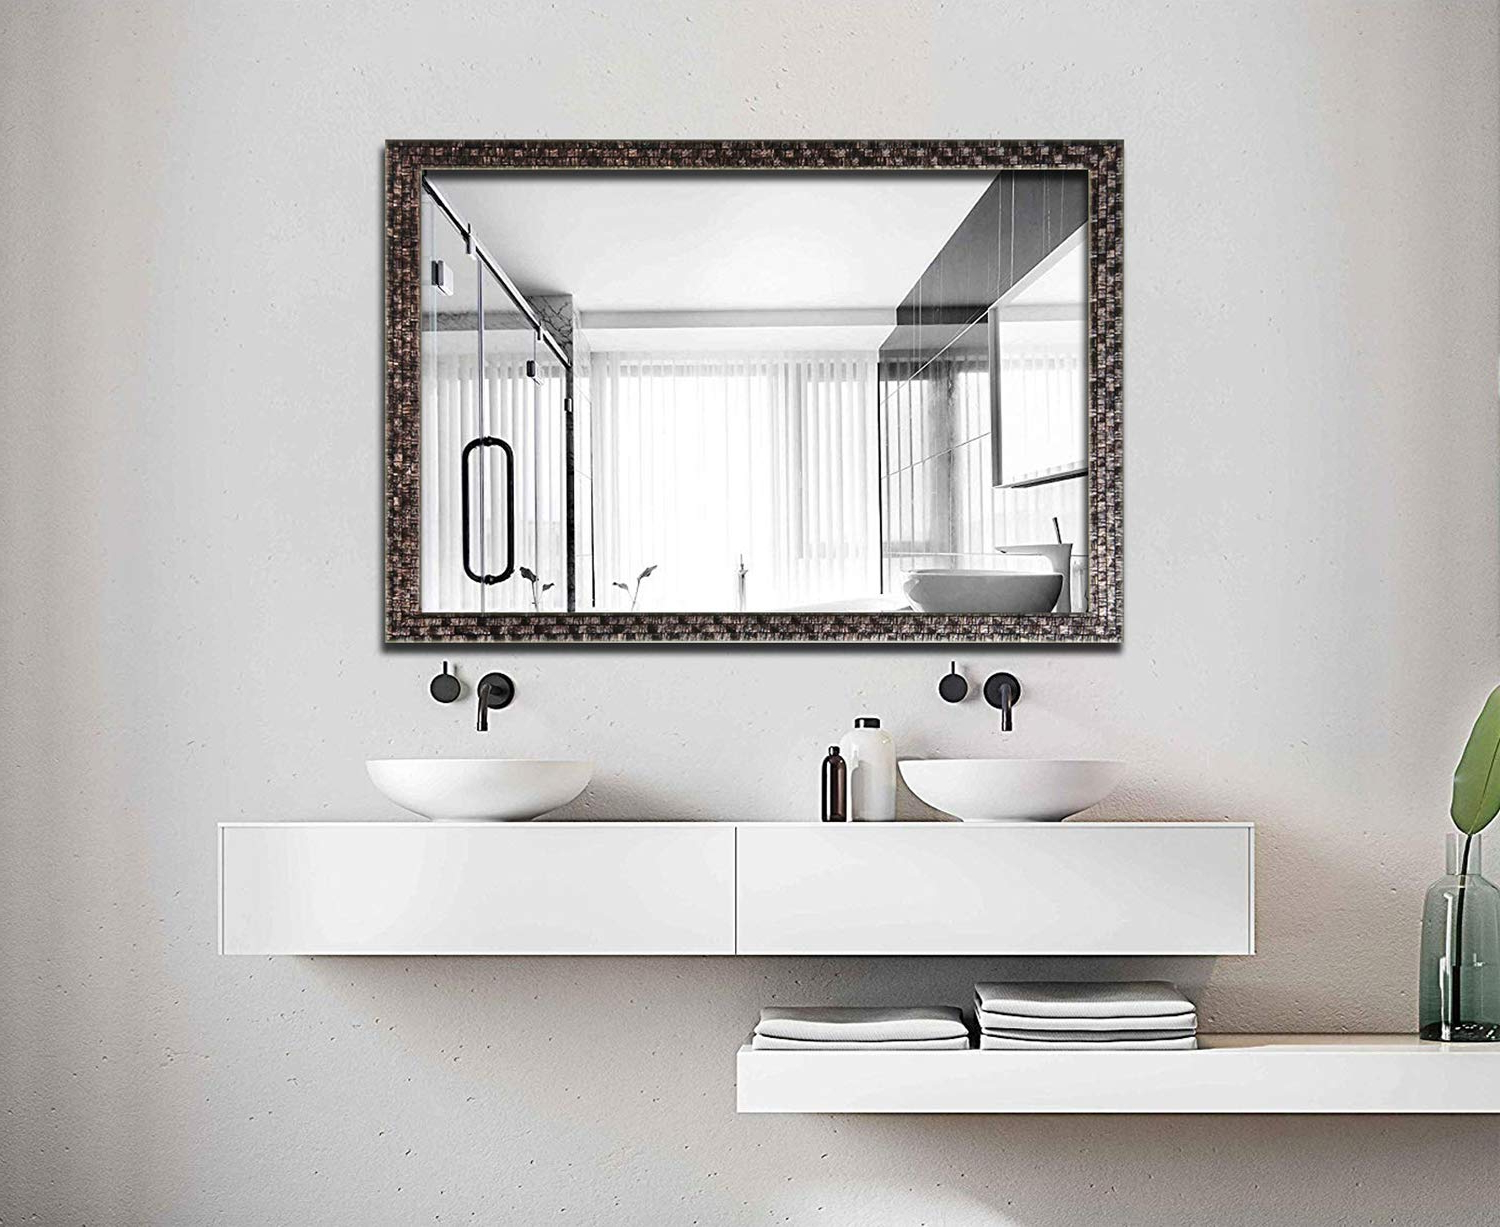 Hans&alice Beveled Bathroom Mirrors Wall Mounted, Modern Framed Mirror For  Bathroom, Bedroom, Living Room Hanging Horizontal Or Vertical Commercial Intended For Well Known Mirror Framed Wall Mirrors (Gallery 13 of 20)